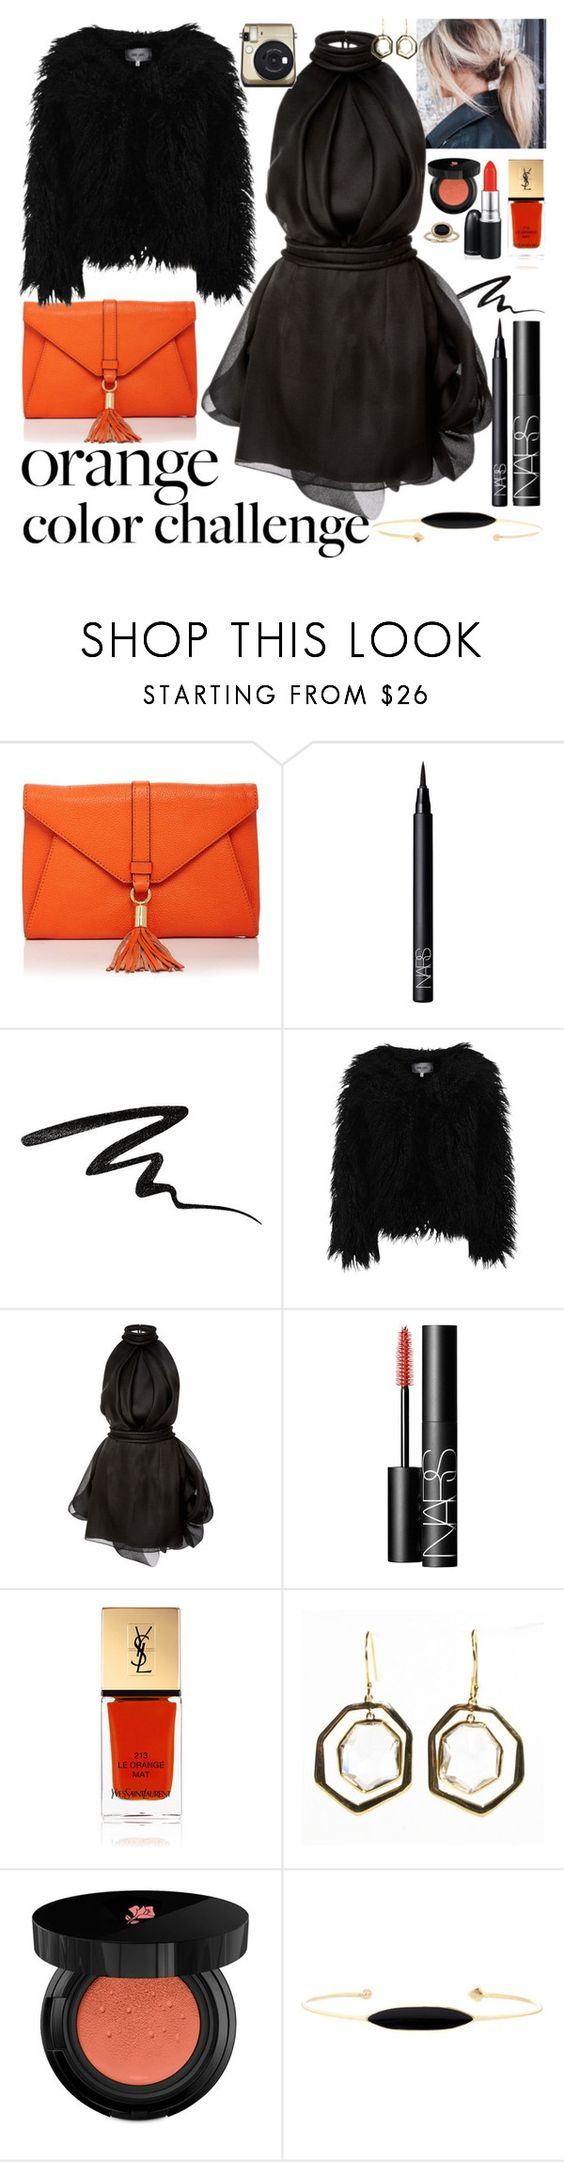 """Orange and black II"" by staceybuijs ❤ liked on Polyvore featuring Milly, NARS Cosmetics, Stila, Dry Lake, Brandon Maxwell, Yves Saint Laurent, MAC Cosmetics, Ippolita, Lancôme and Aliita"